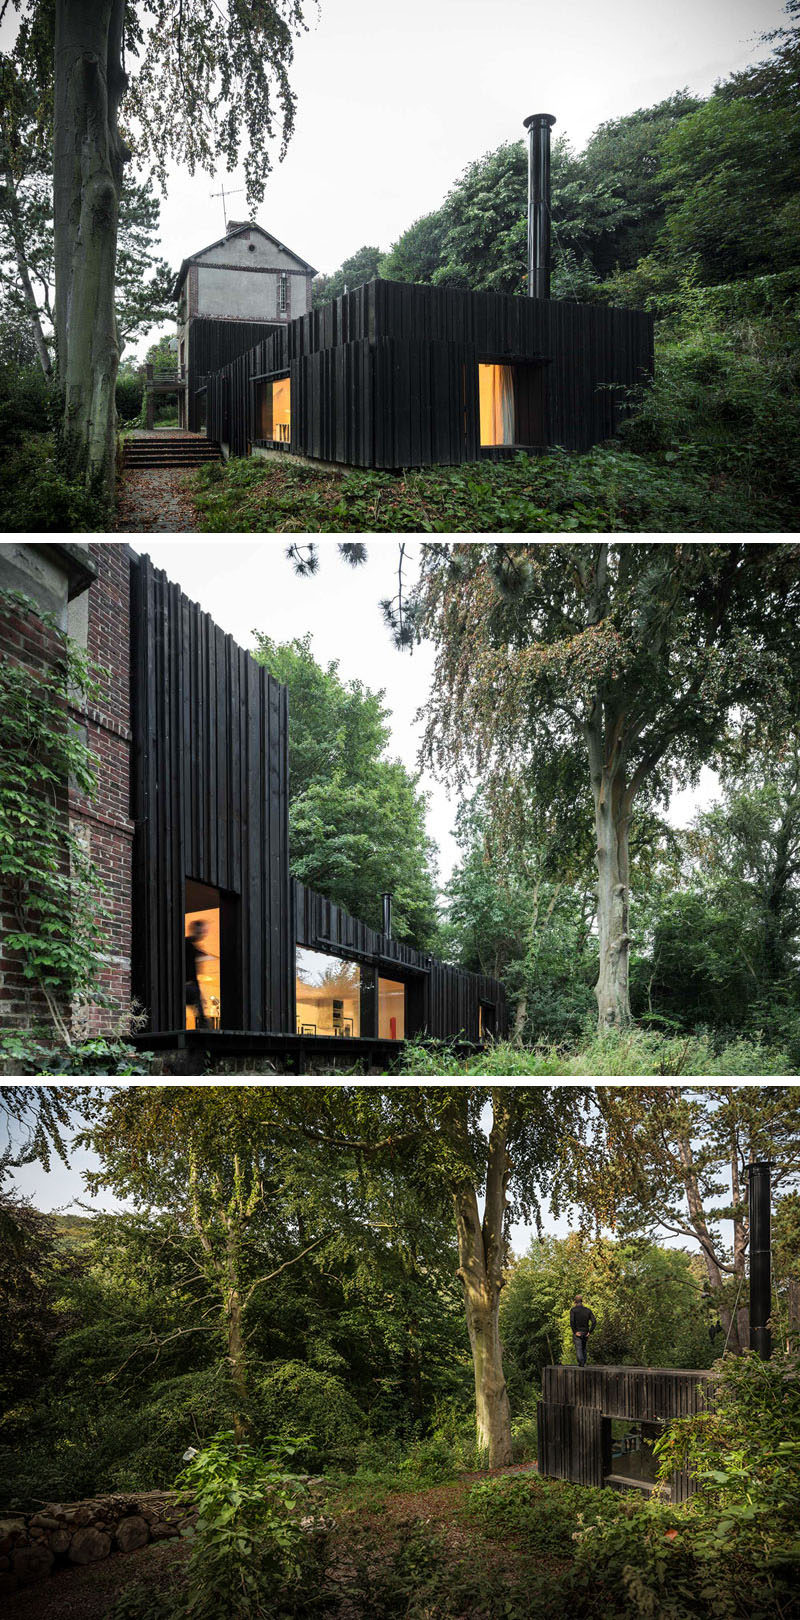 13 Totally Secluded Homes To Escape From The World // Tucked into a forest in Normandy, France, is this modest house that provides comfort and ultimate privacy.